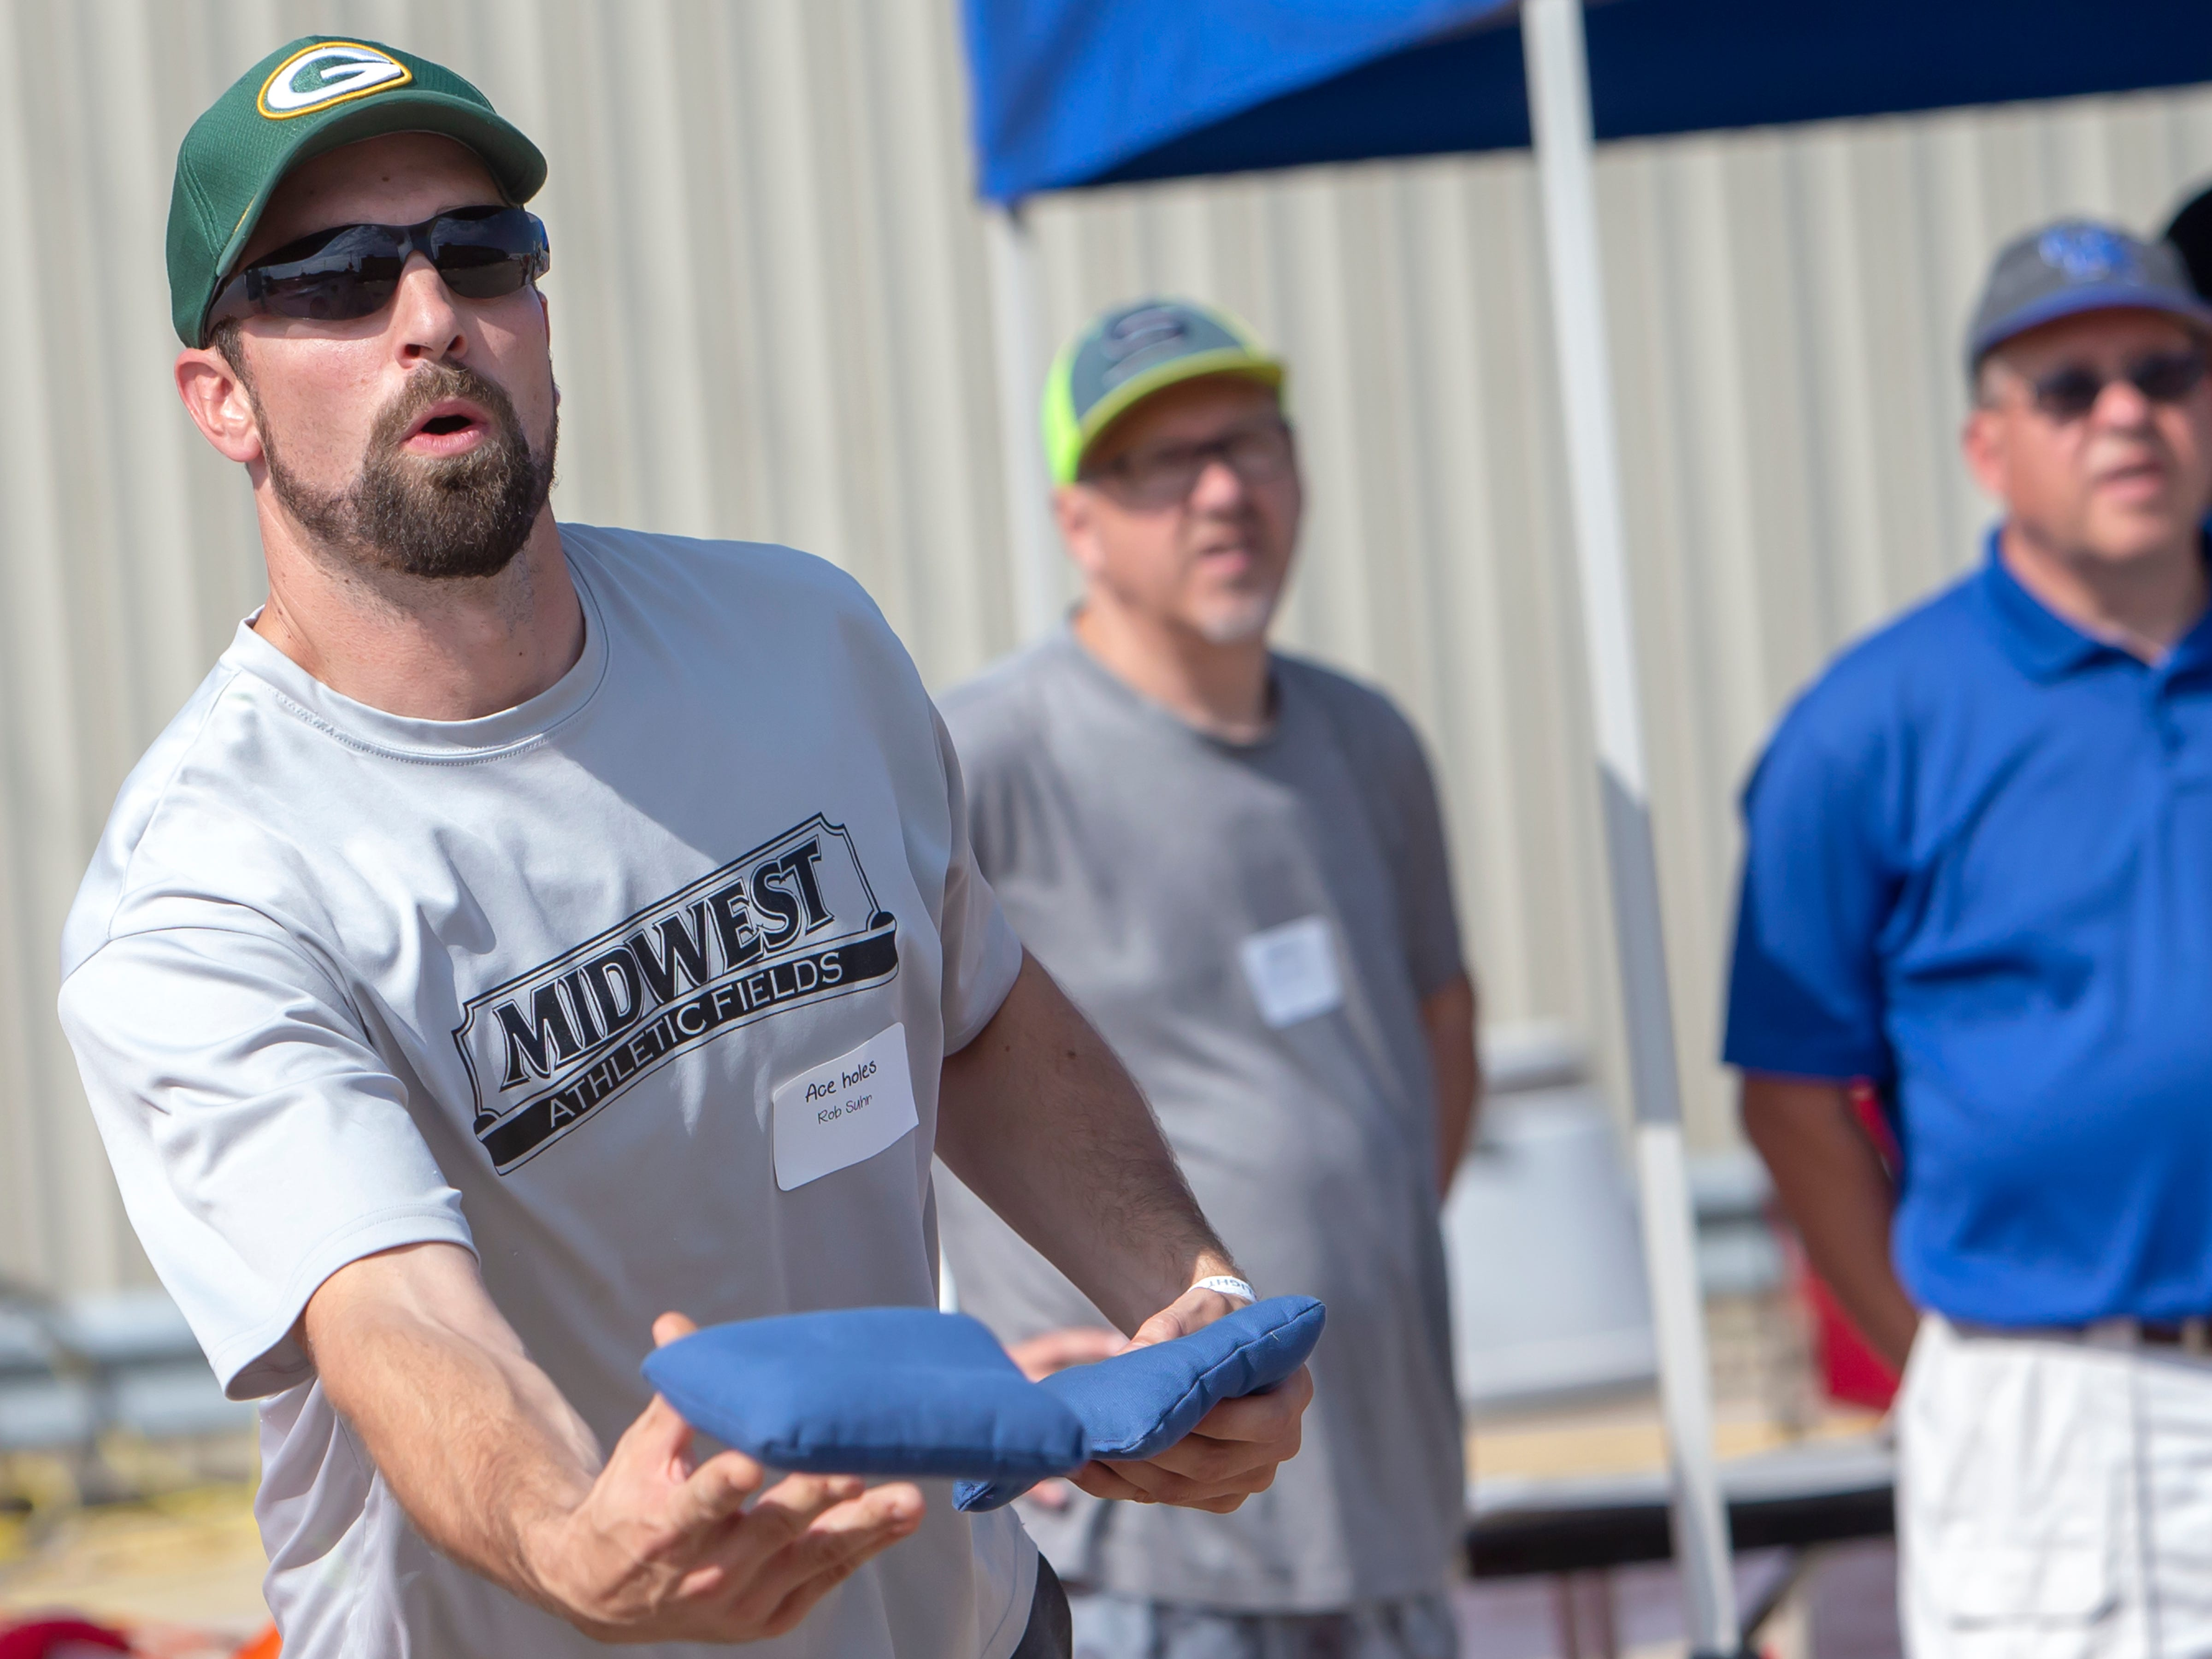 Rob Suhr tosses a blue bean bag competing in the Wisconsin Cornhole Tourney at Dockside Tavern in Oshkosh on Saturday, Sept. 15, 2018.